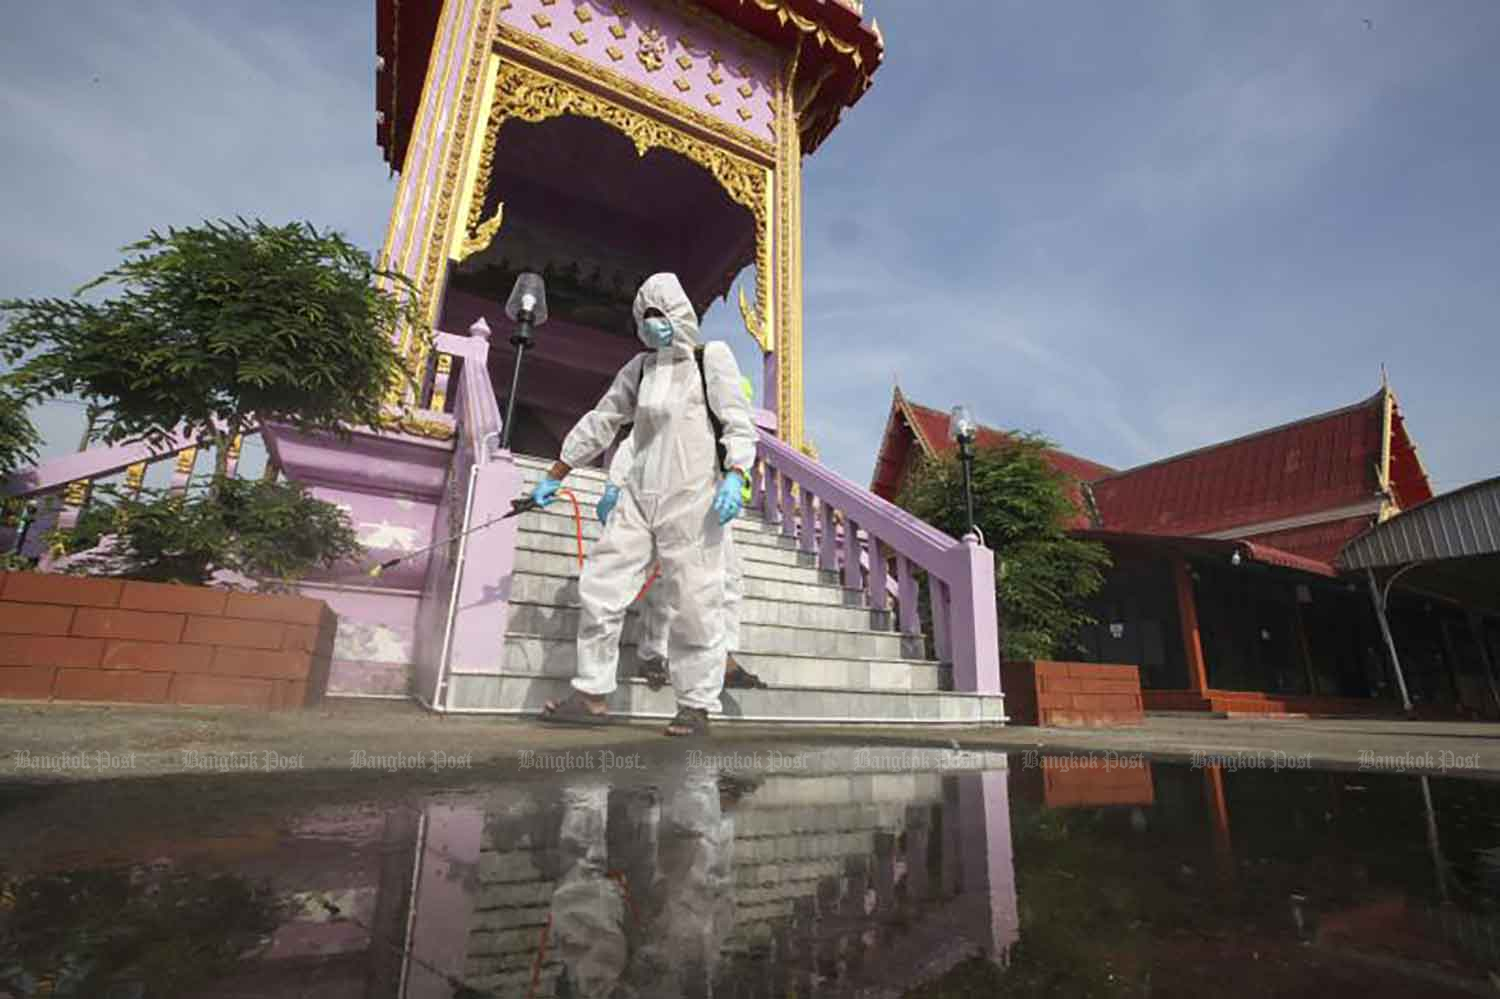 A disease control worker sprays disinfectant at the crematorium of Wat Bang Muang in Bang Yai district of Nonthaburi on Wednesday. The abbot has offered free funerals for Covid-19 victims, to help their bereaved families. (Photo: Pattarapong Chatpattarasill)